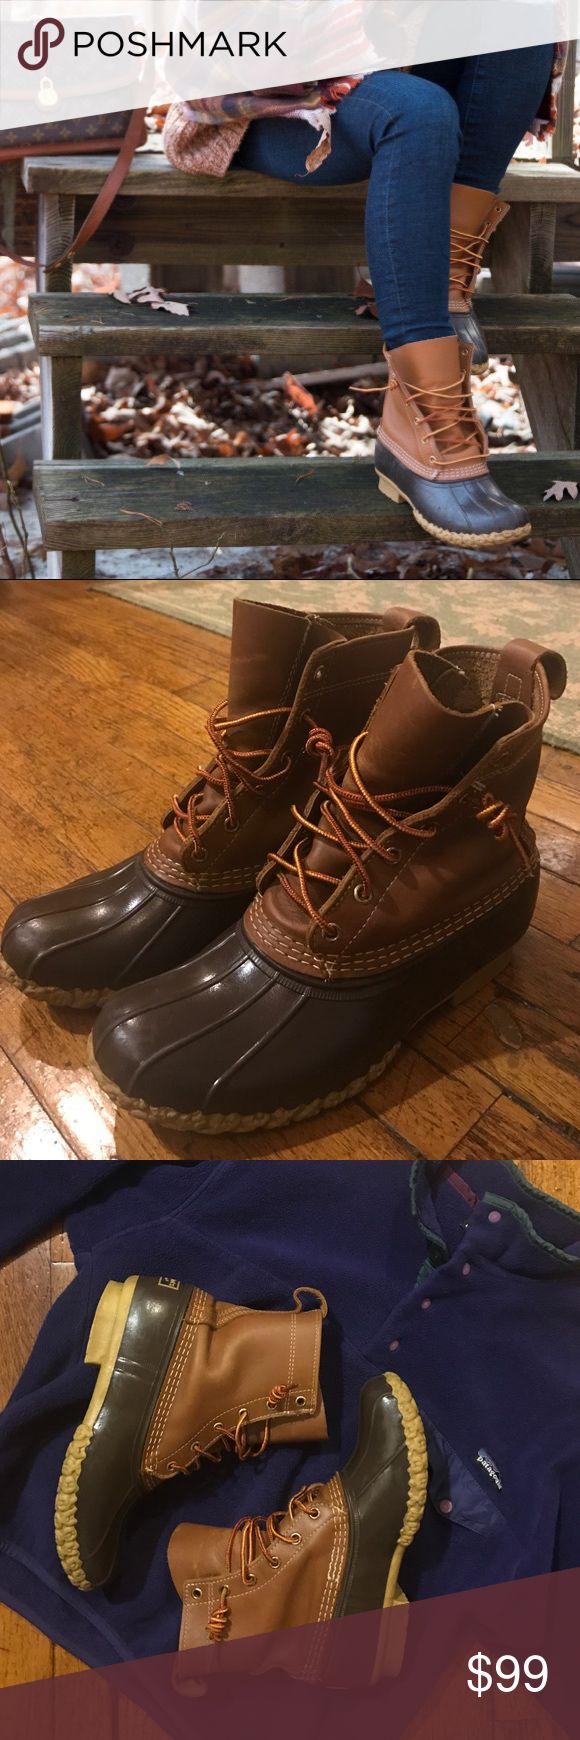 L.L. Bean Duck Boots! The classic LL Bean Duck Boots in Brown/Tan! Very gently used--just broken in enough for you to be able to slip them right on and be comfy (avoiding that break-in period that lasts a few weeks before they begin to soften up and look natural on your feet)! In case you don't already know: SIZE DOWN in LLBean Duck Boots! These are a size 7, but fit an 8-8.5. These are often backordered and are never eligible for sales promotions from LLBean, so snag them here! :) Patagonia…